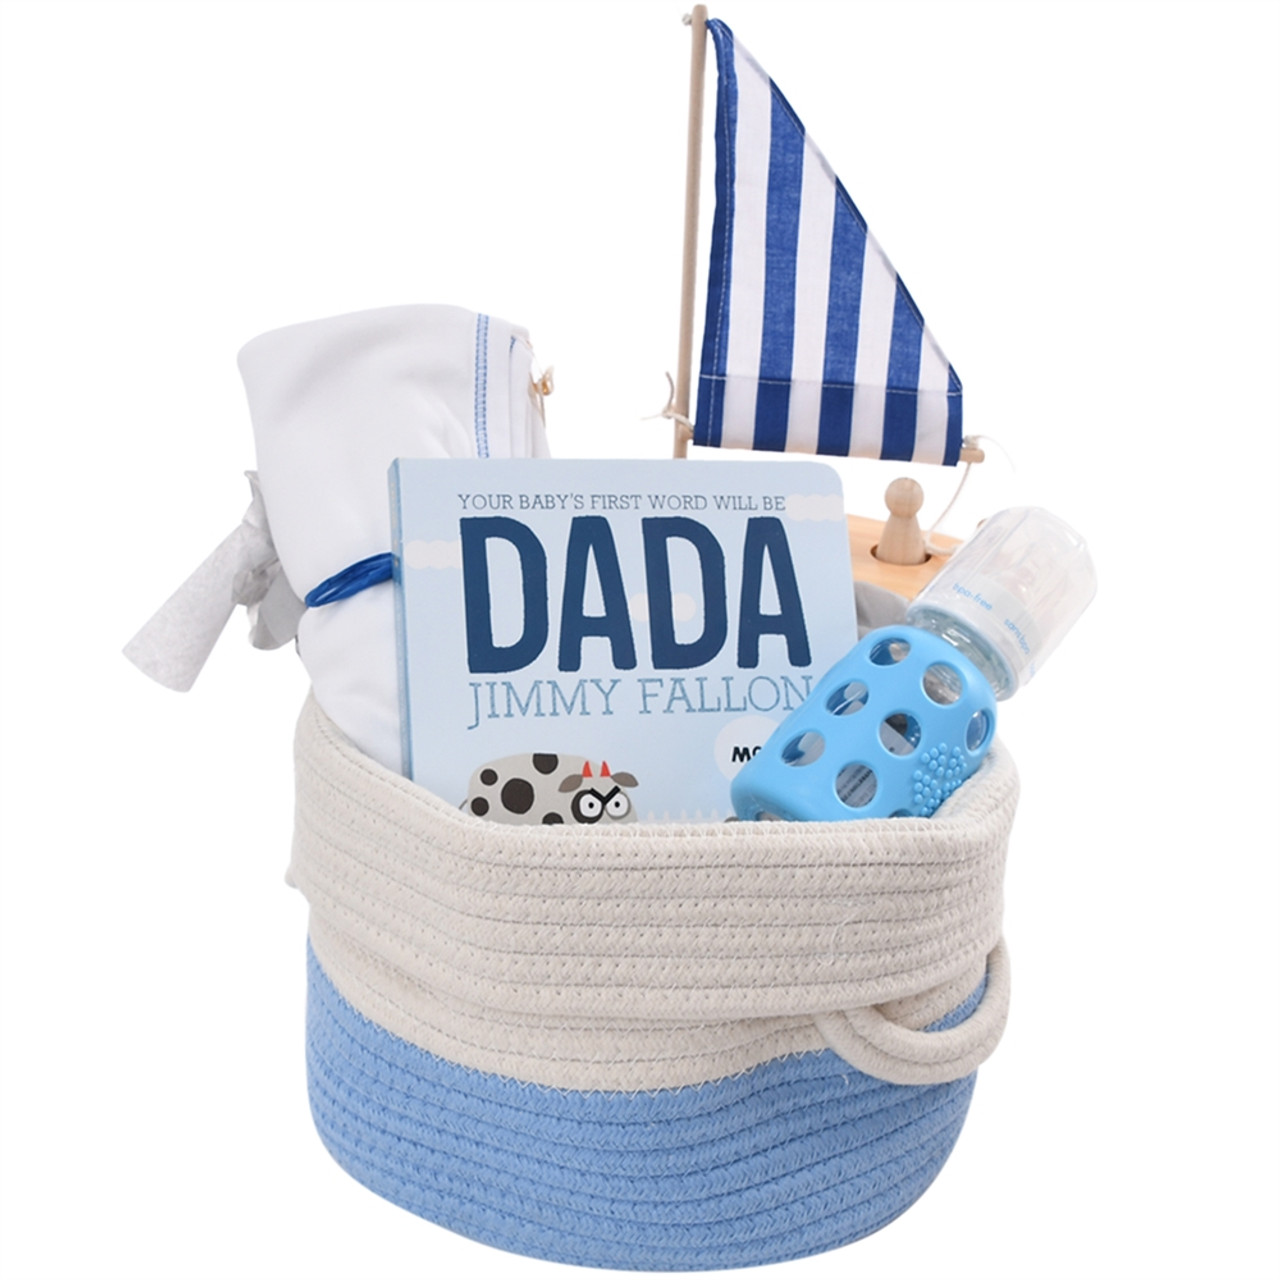 First Time Dad Gifts - I'm a Daddy!